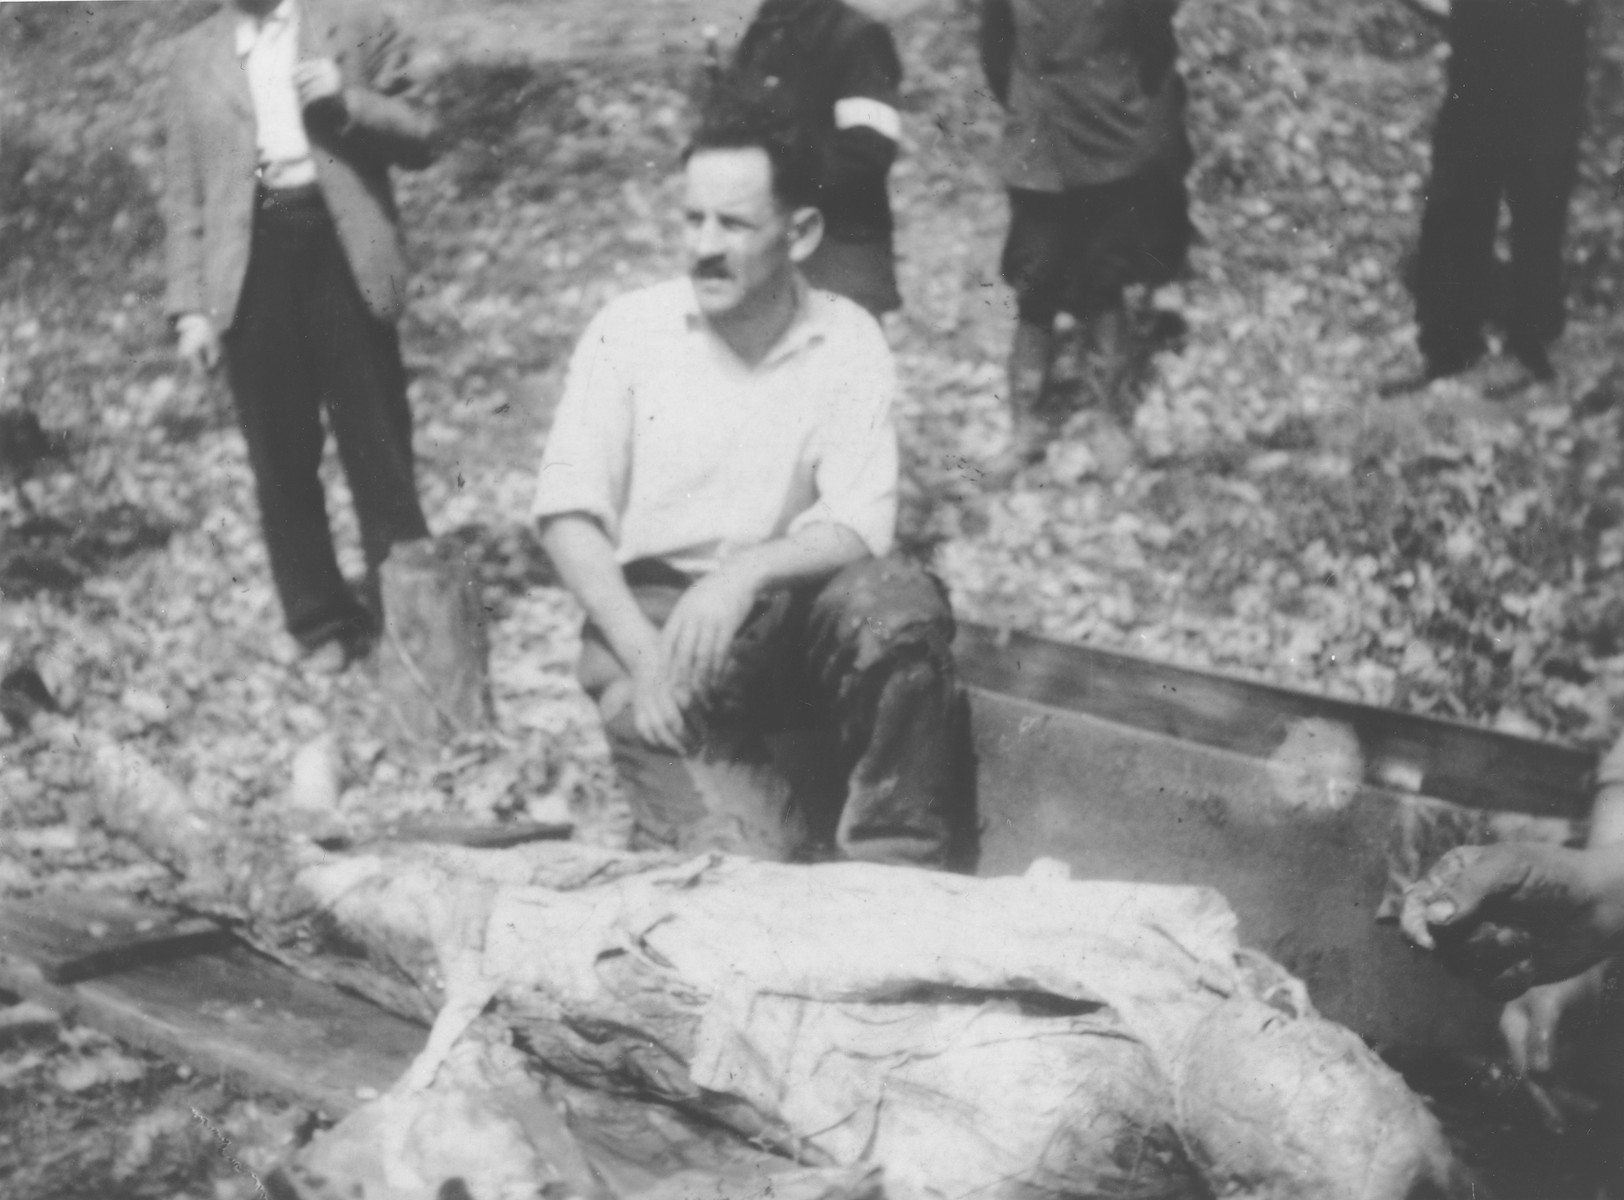 Jozsef Gecse, a Hungarian Nazi who was active in the ghetto, sits next to the body of a Jew killed in the ghetto in Dej